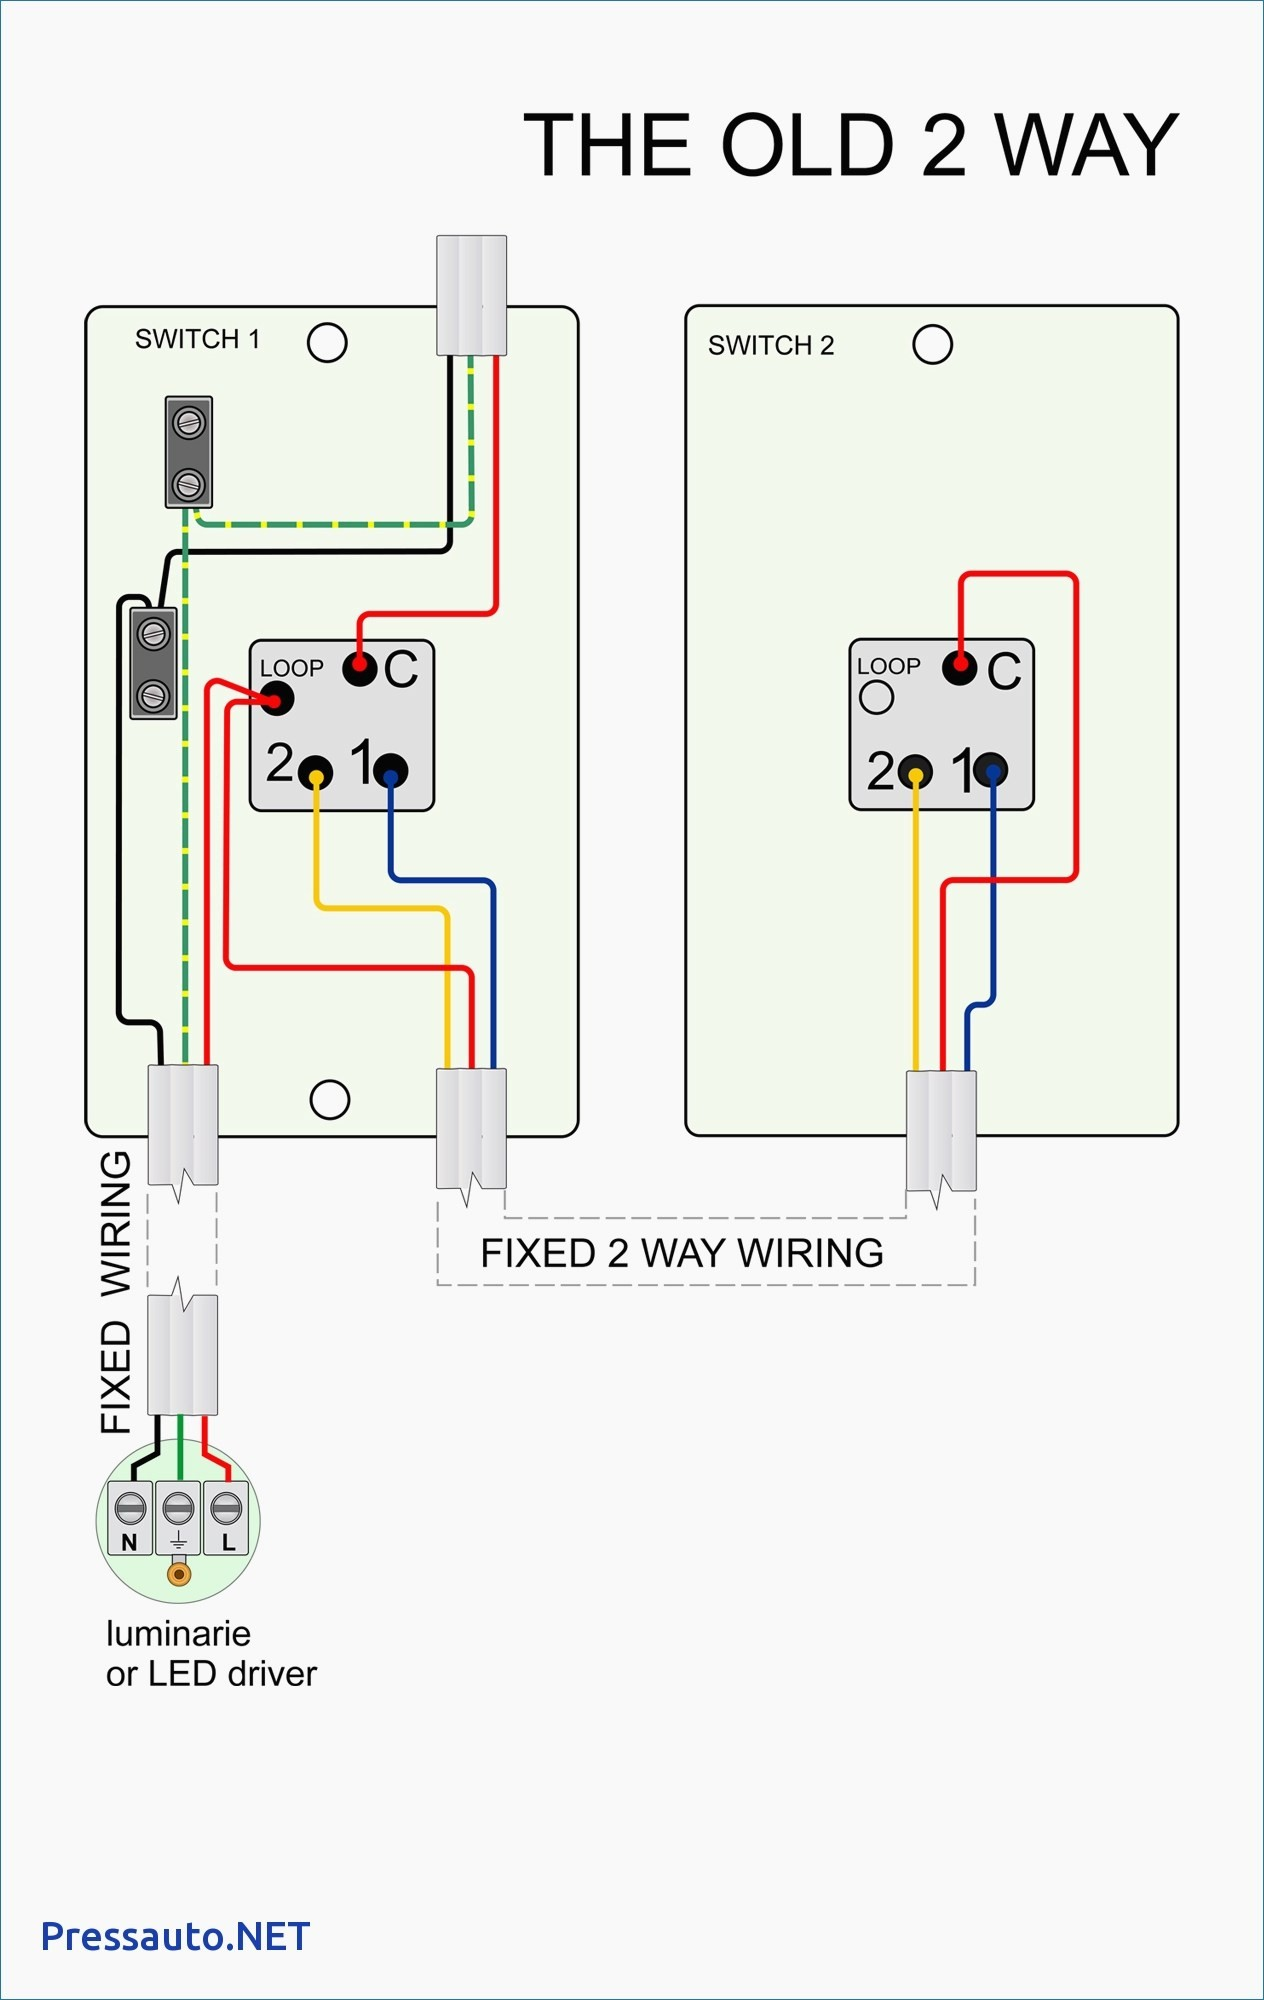 Tractor With Lights 2 Switches Wiring Diagram Beautiful Light Switch Way